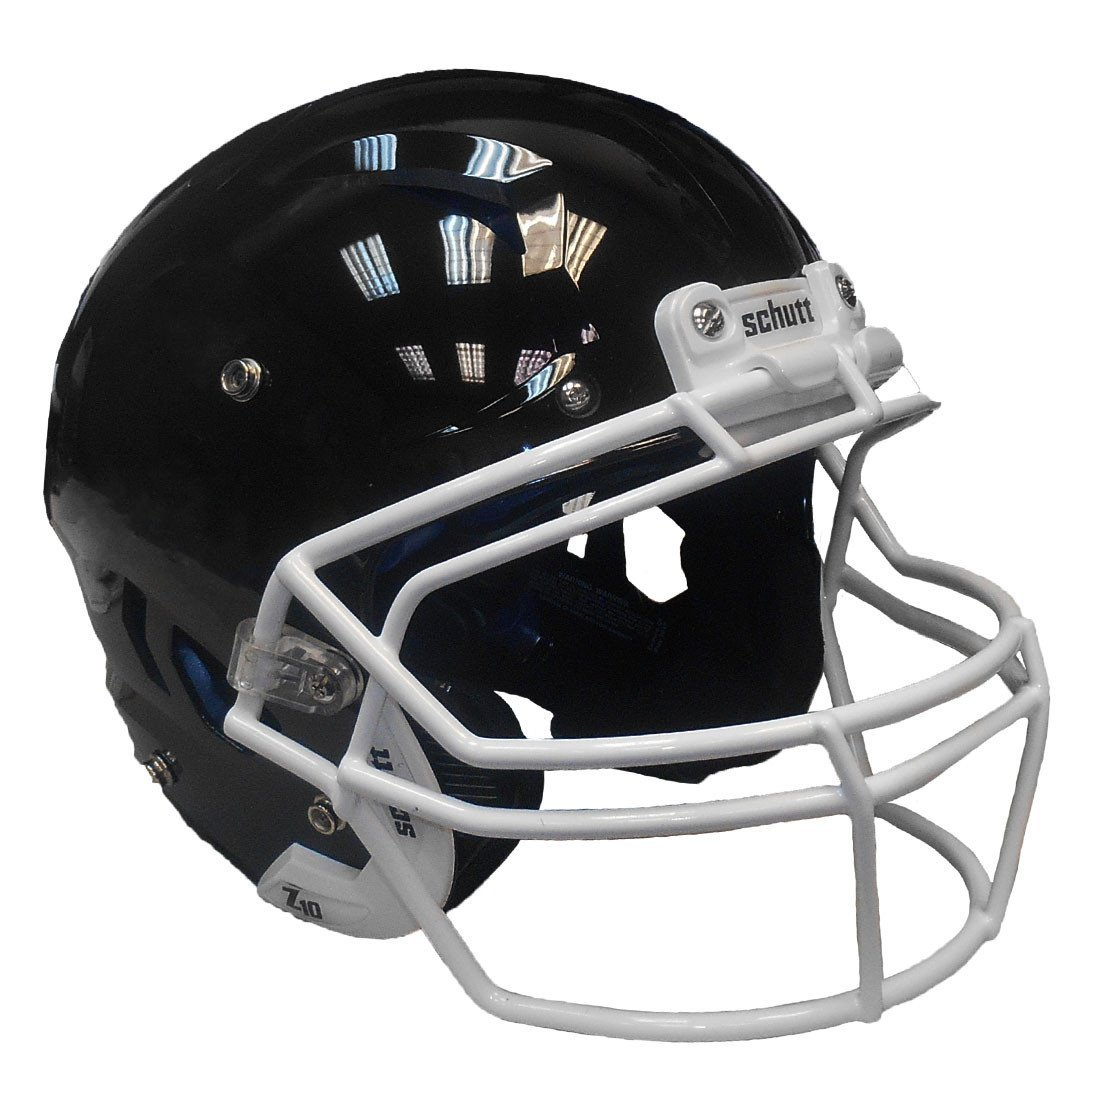 Schutt Z10 - Cartel de titanio para adulto: Amazon.es ...